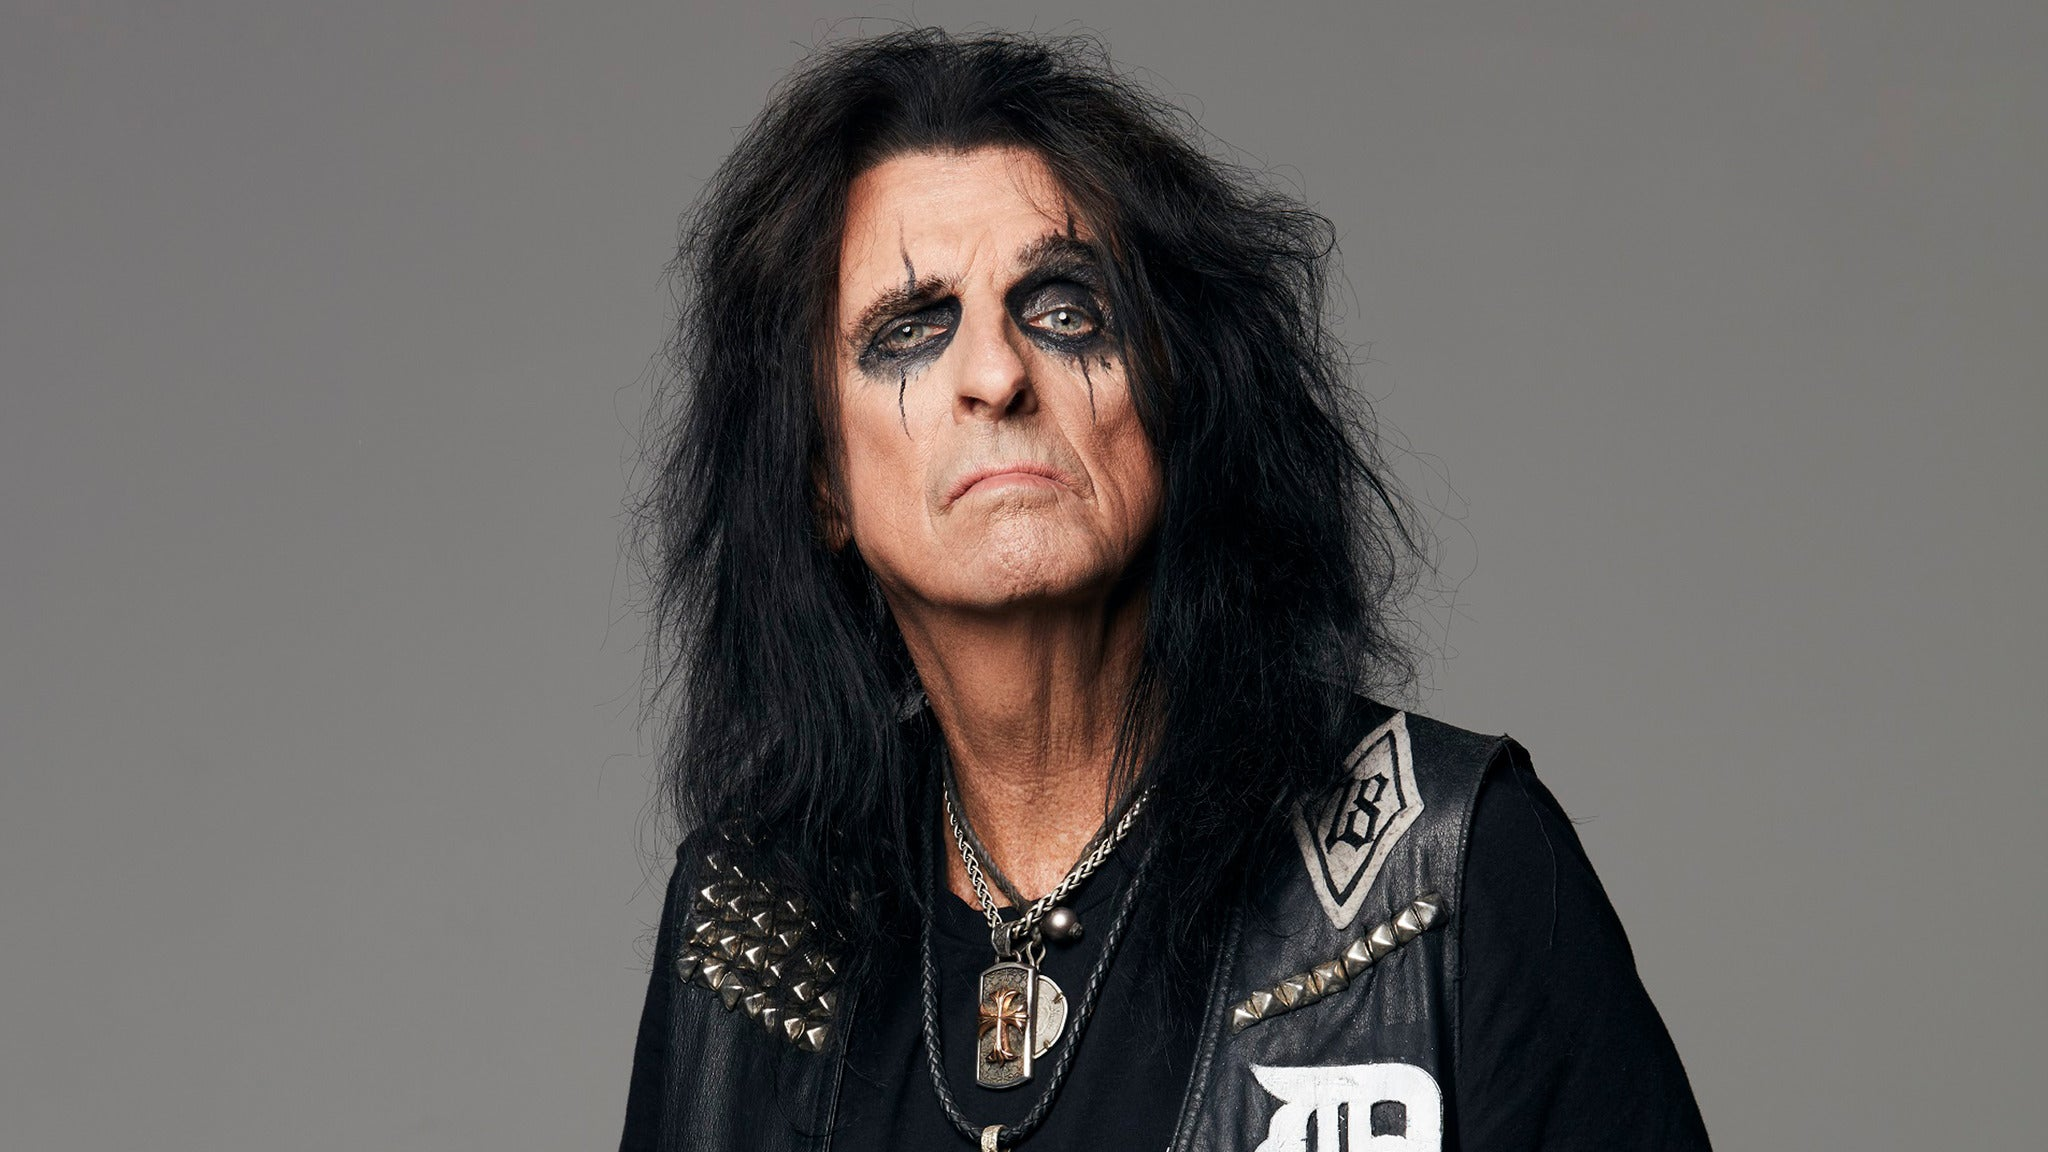 Alice Cooper with special guest Ace Frehley